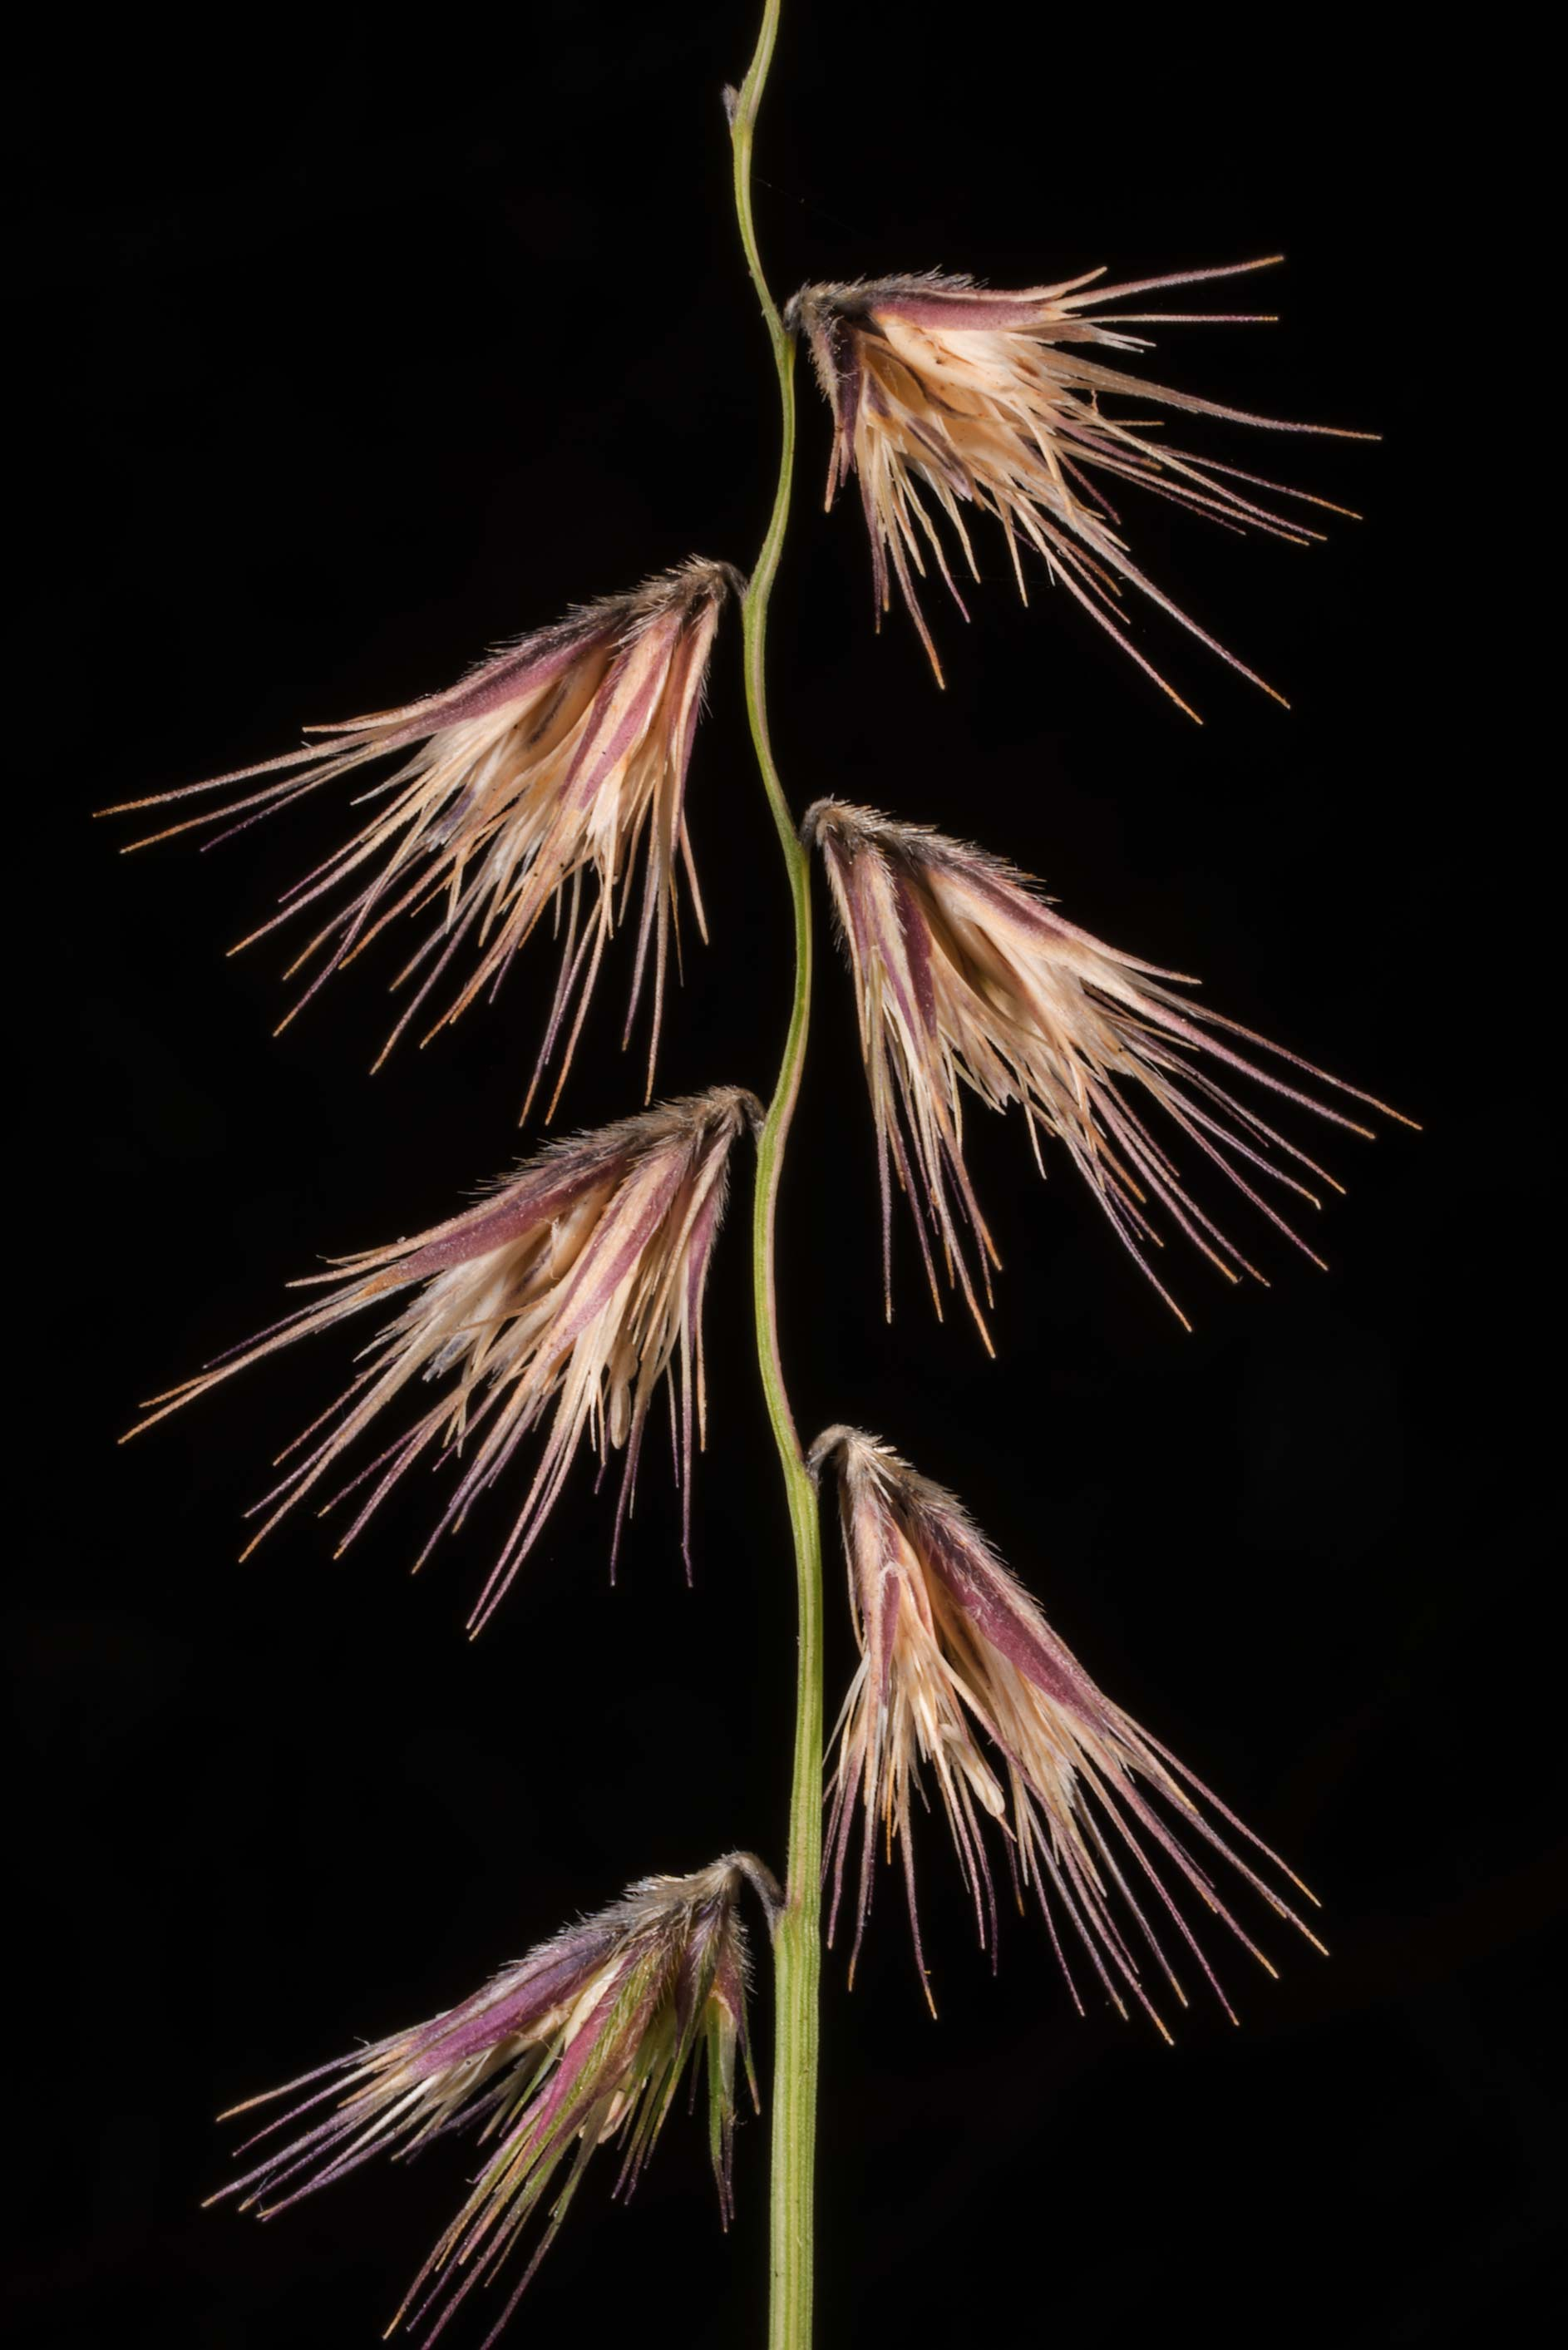 Spikelet of grama grass (Bouteloua rigidiseta) in...Pen Creek Park. College Station, Texas